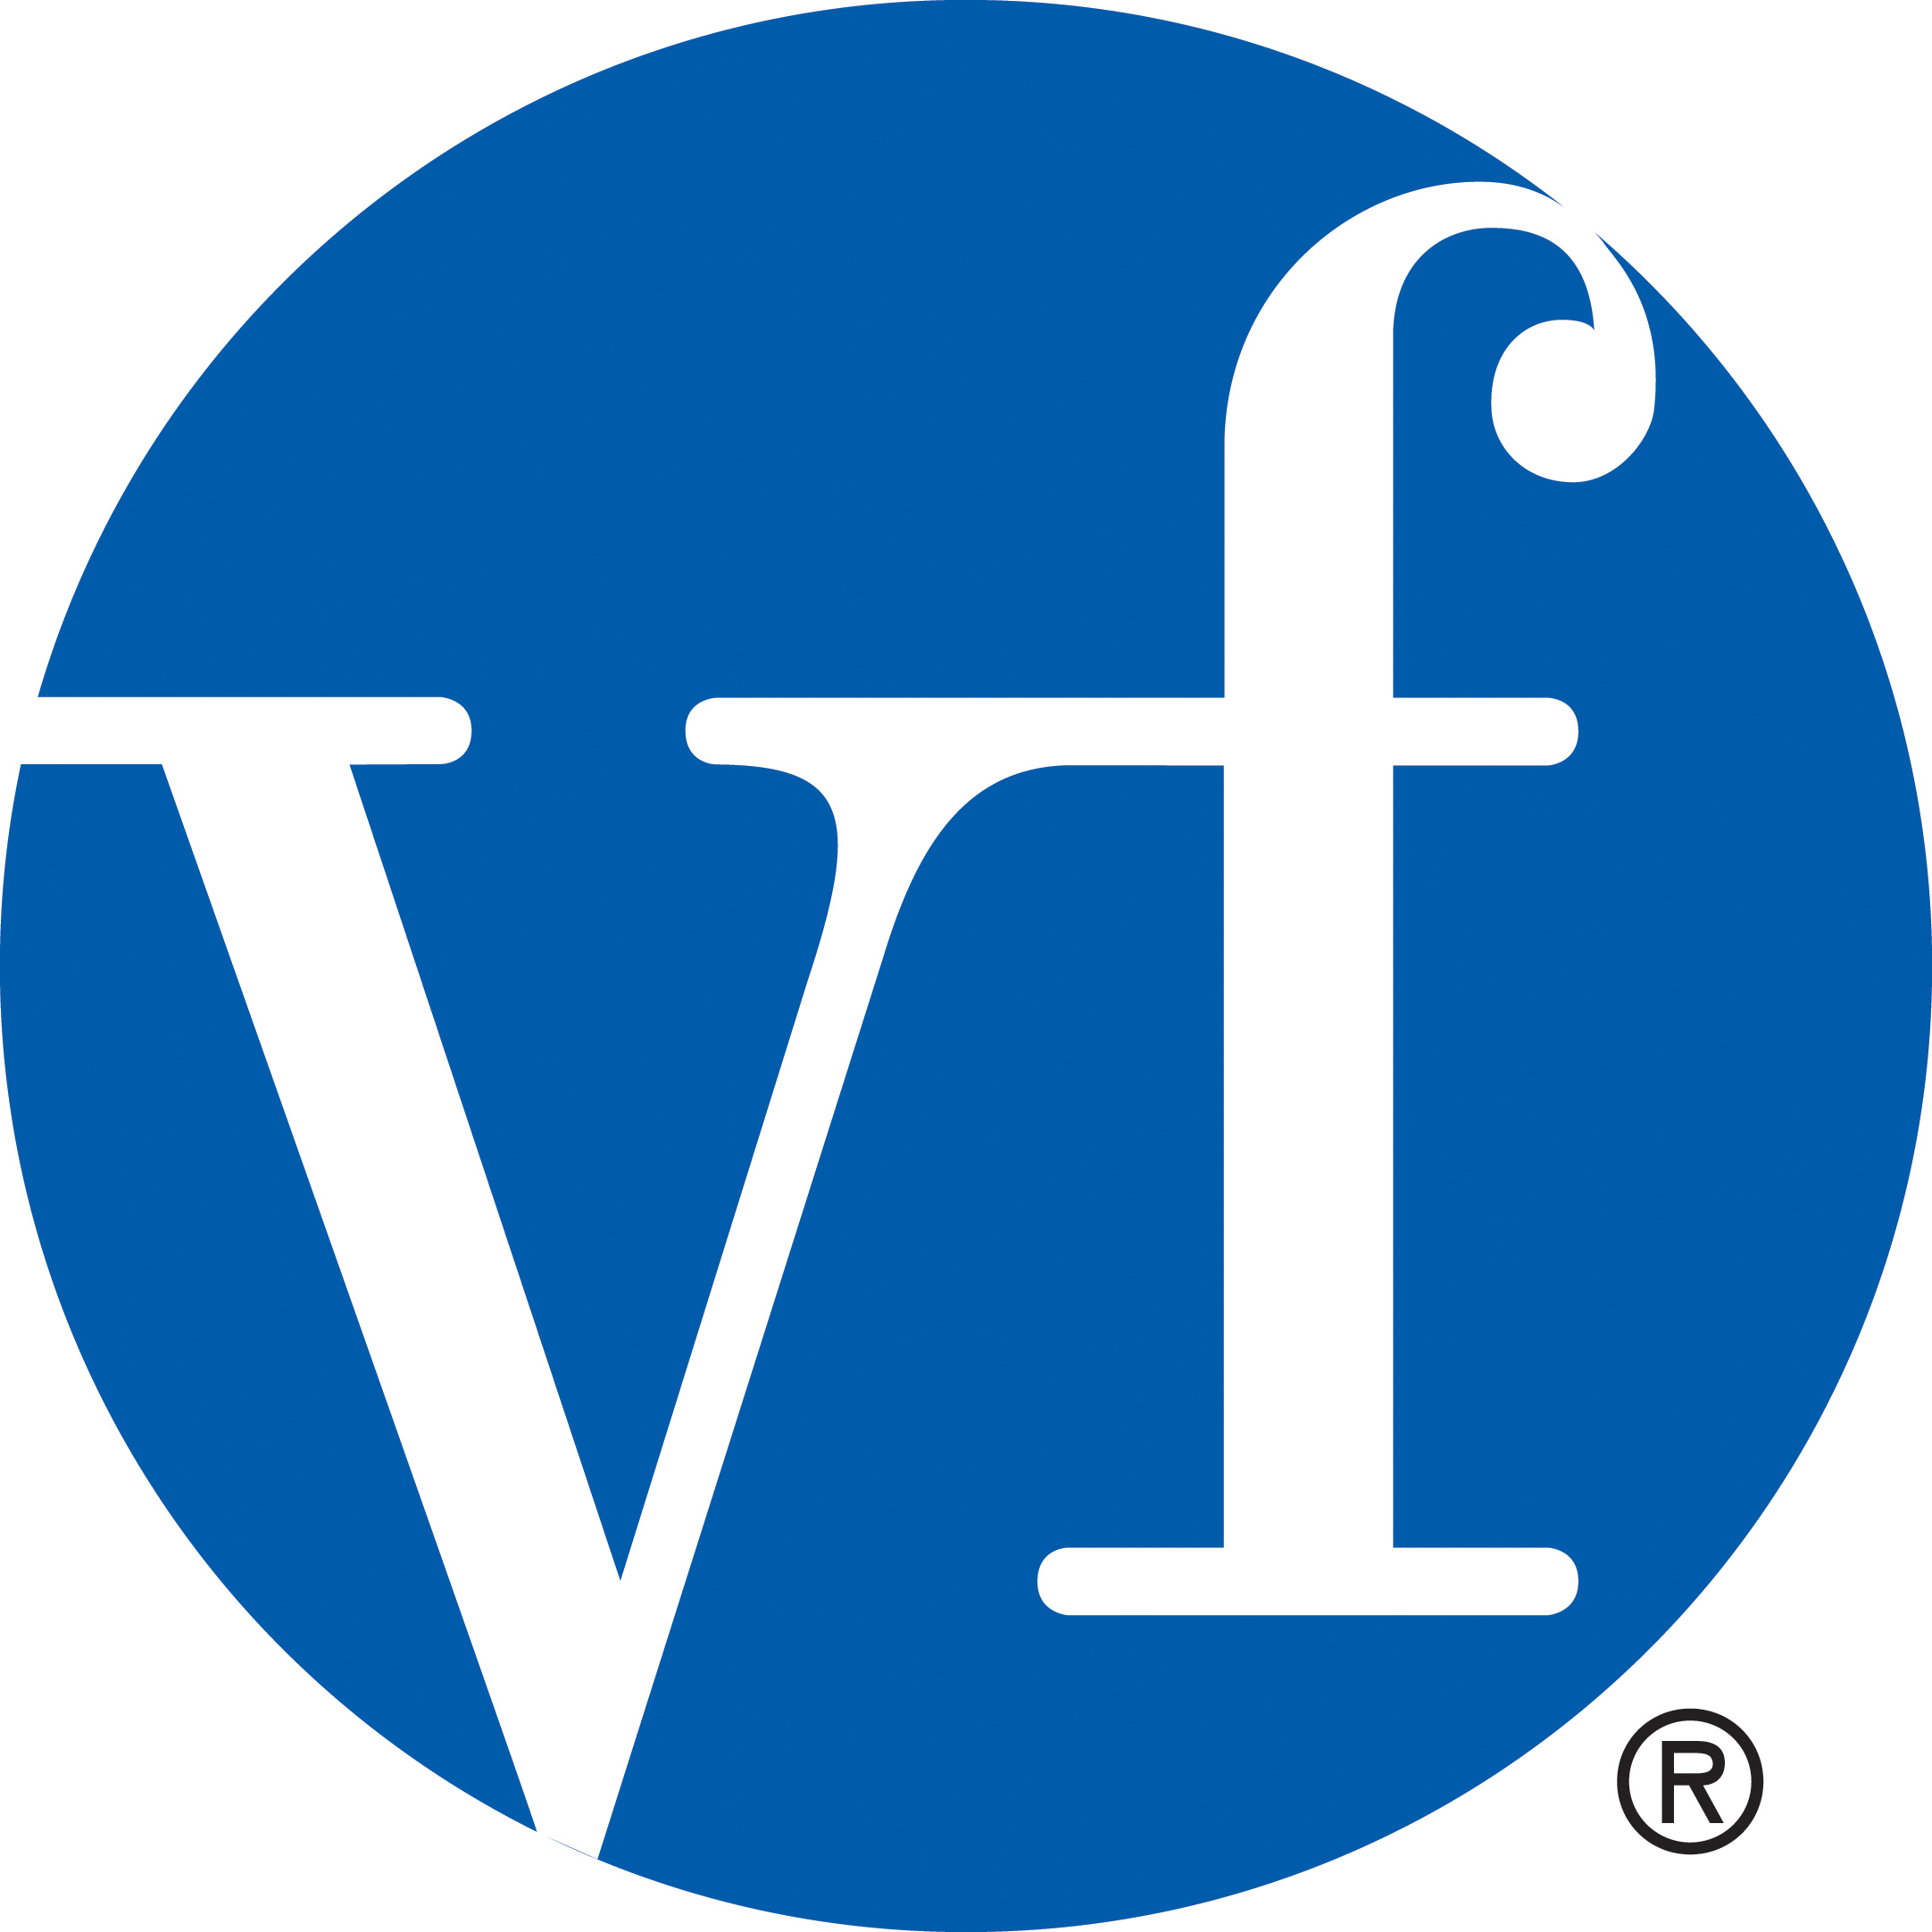 VF spinoff taps Wrangler building for HQ, but some functions are bound for Revolution Mill